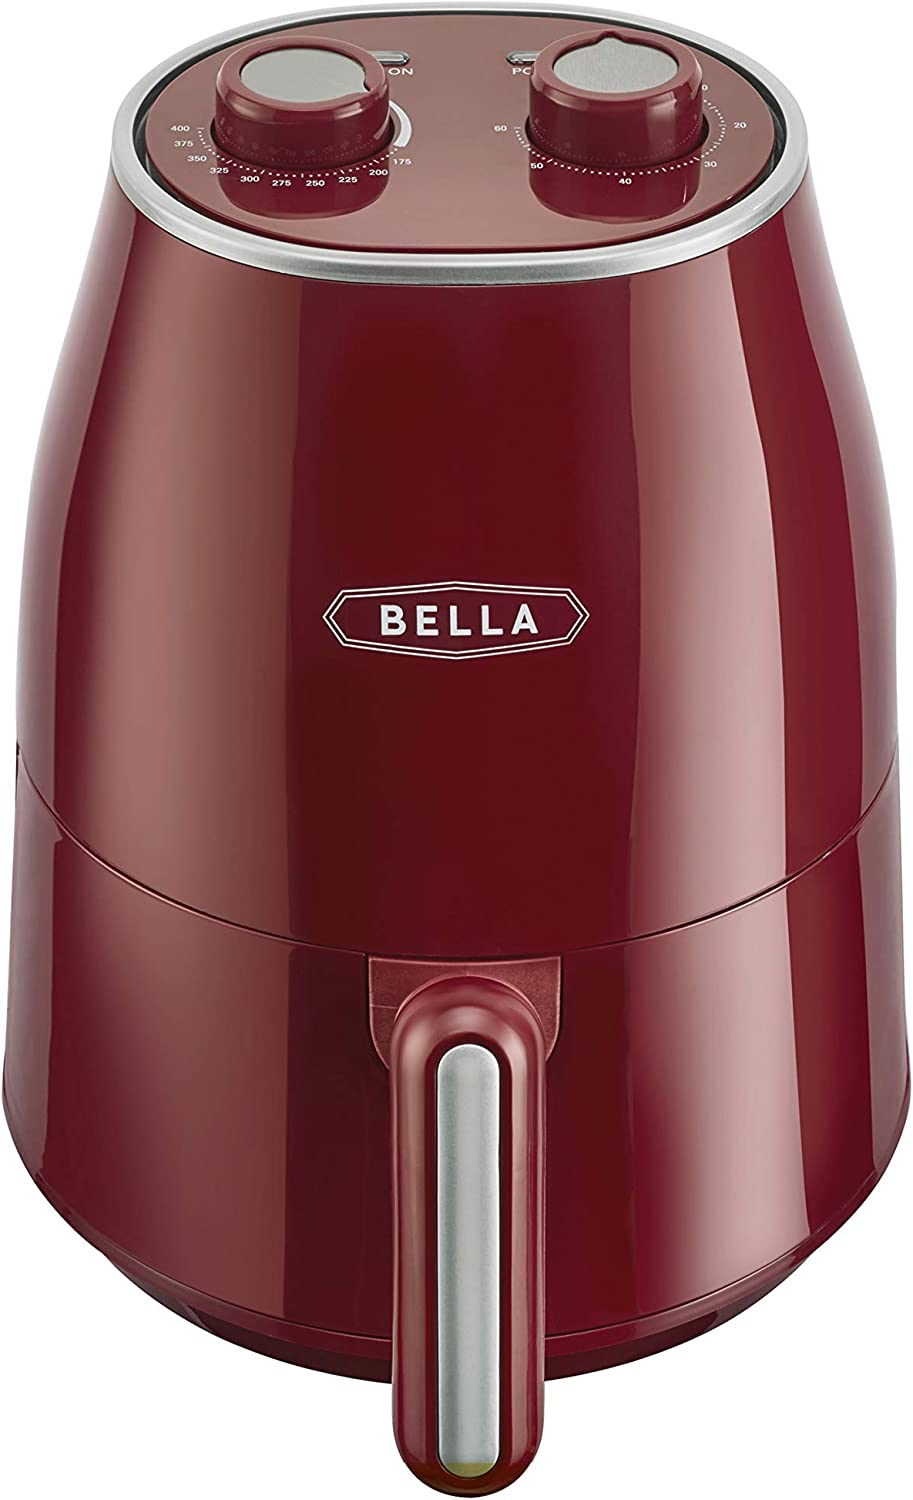 BELLA Air Convection Fryer, Healthy No-Oil Frying & Cooking, Removeable Dishwasher Safe Pan and Crisping Tray, Temperature and Timer Control, 1.6 QT, Red